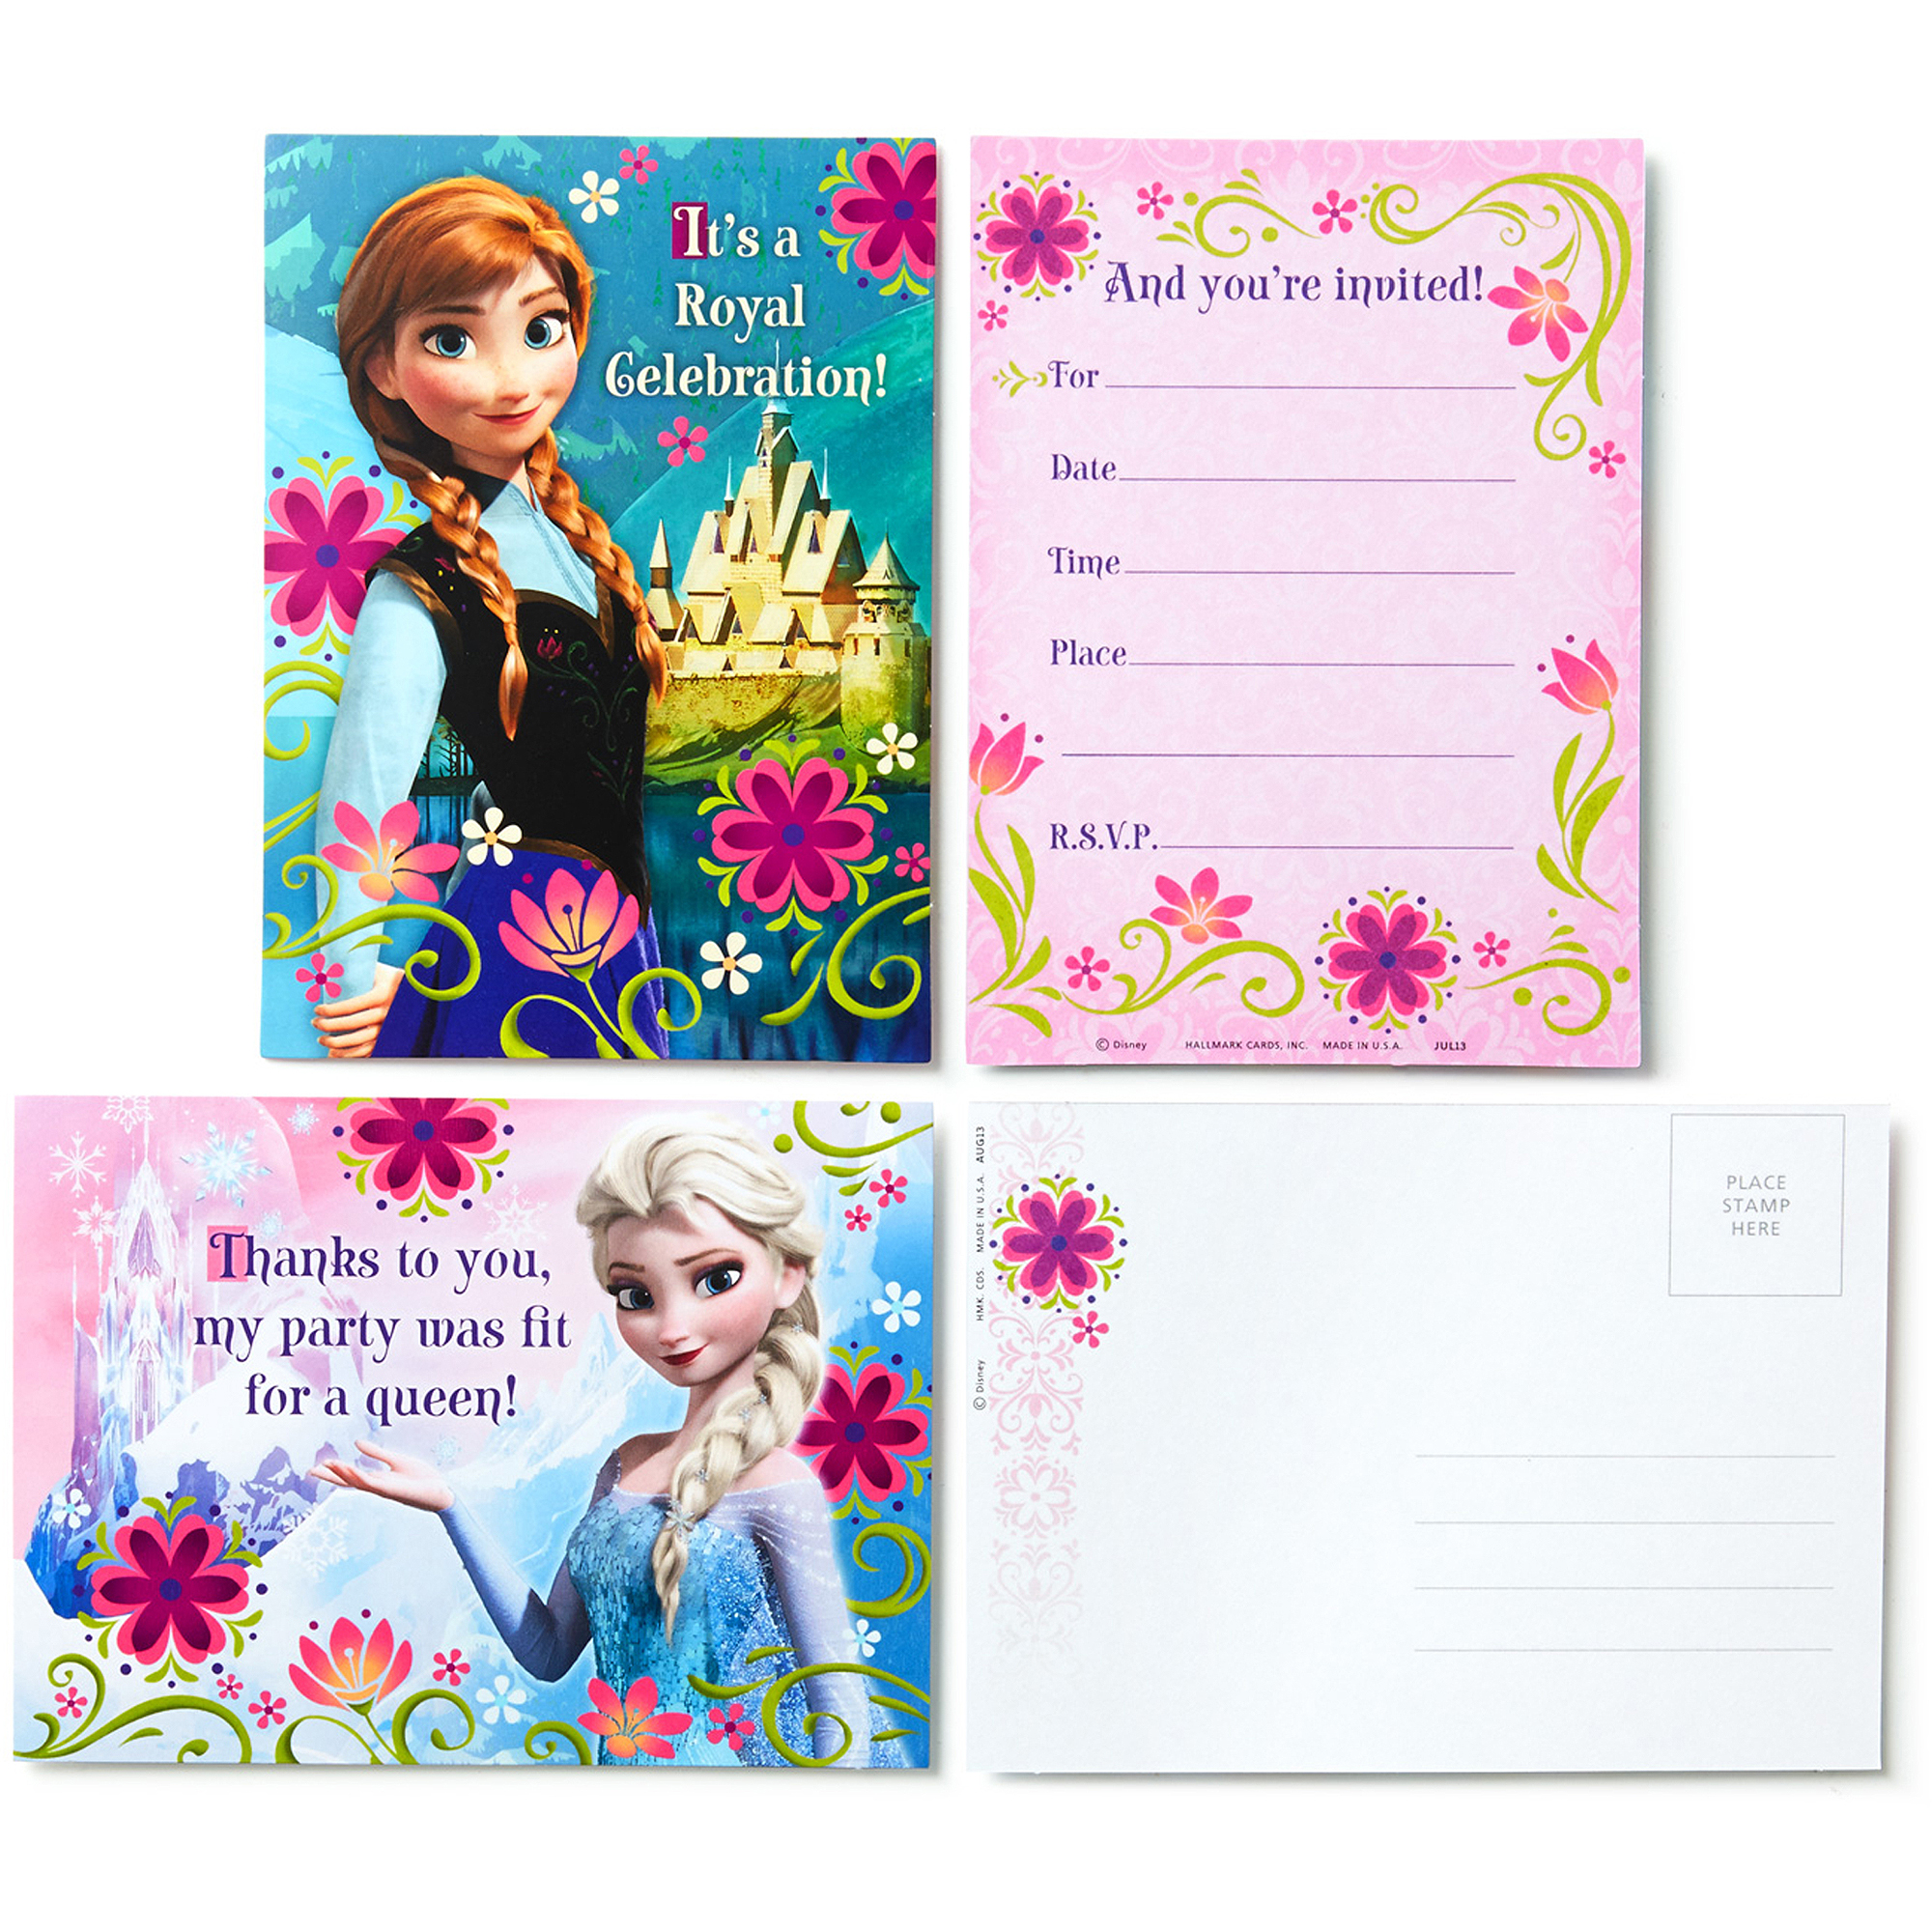 Hallmark Party Disney Frozen Invitations With Envelopes And Thank You Postcards